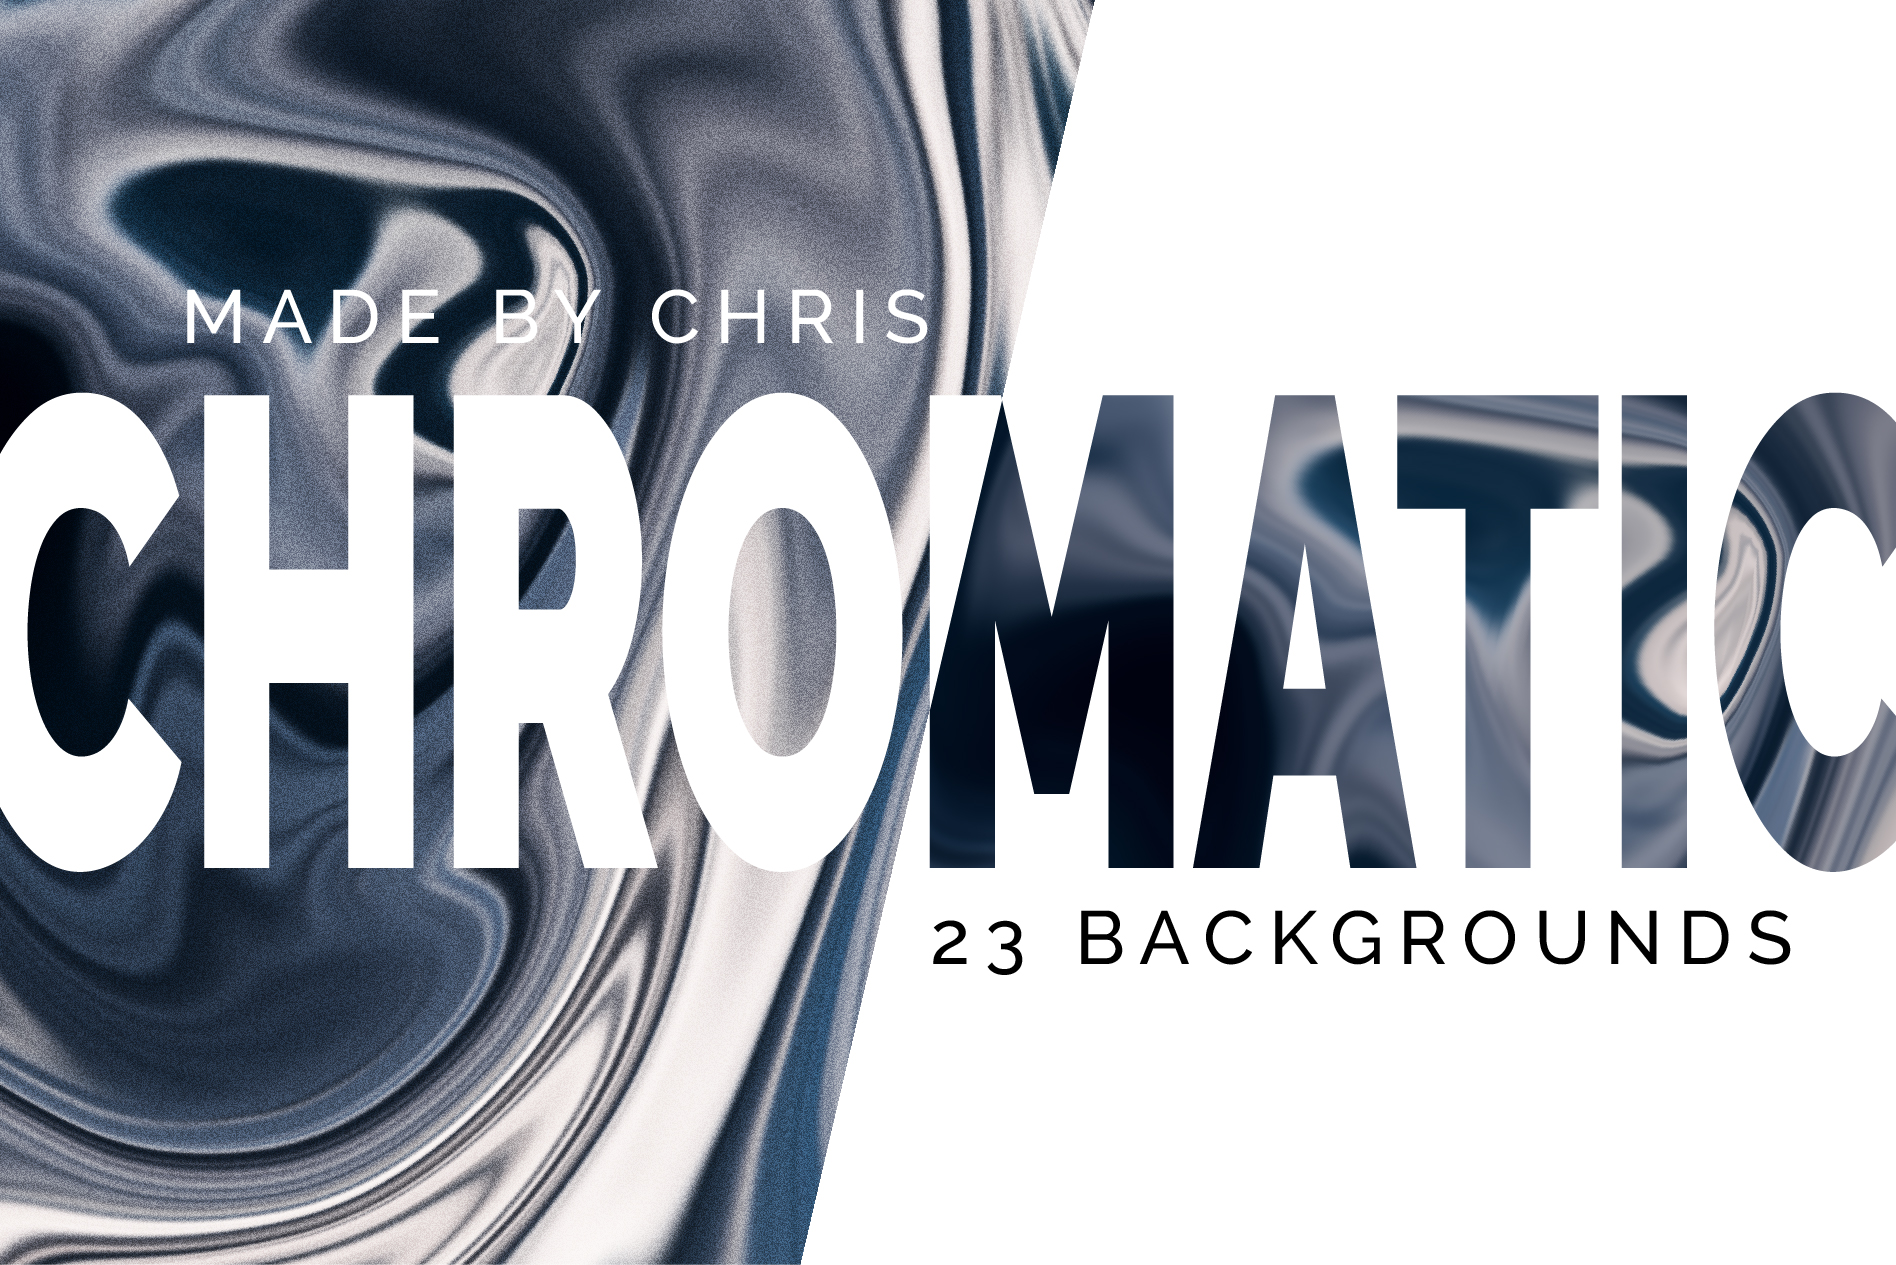 Chromatic Backgrounds - Made By Chris